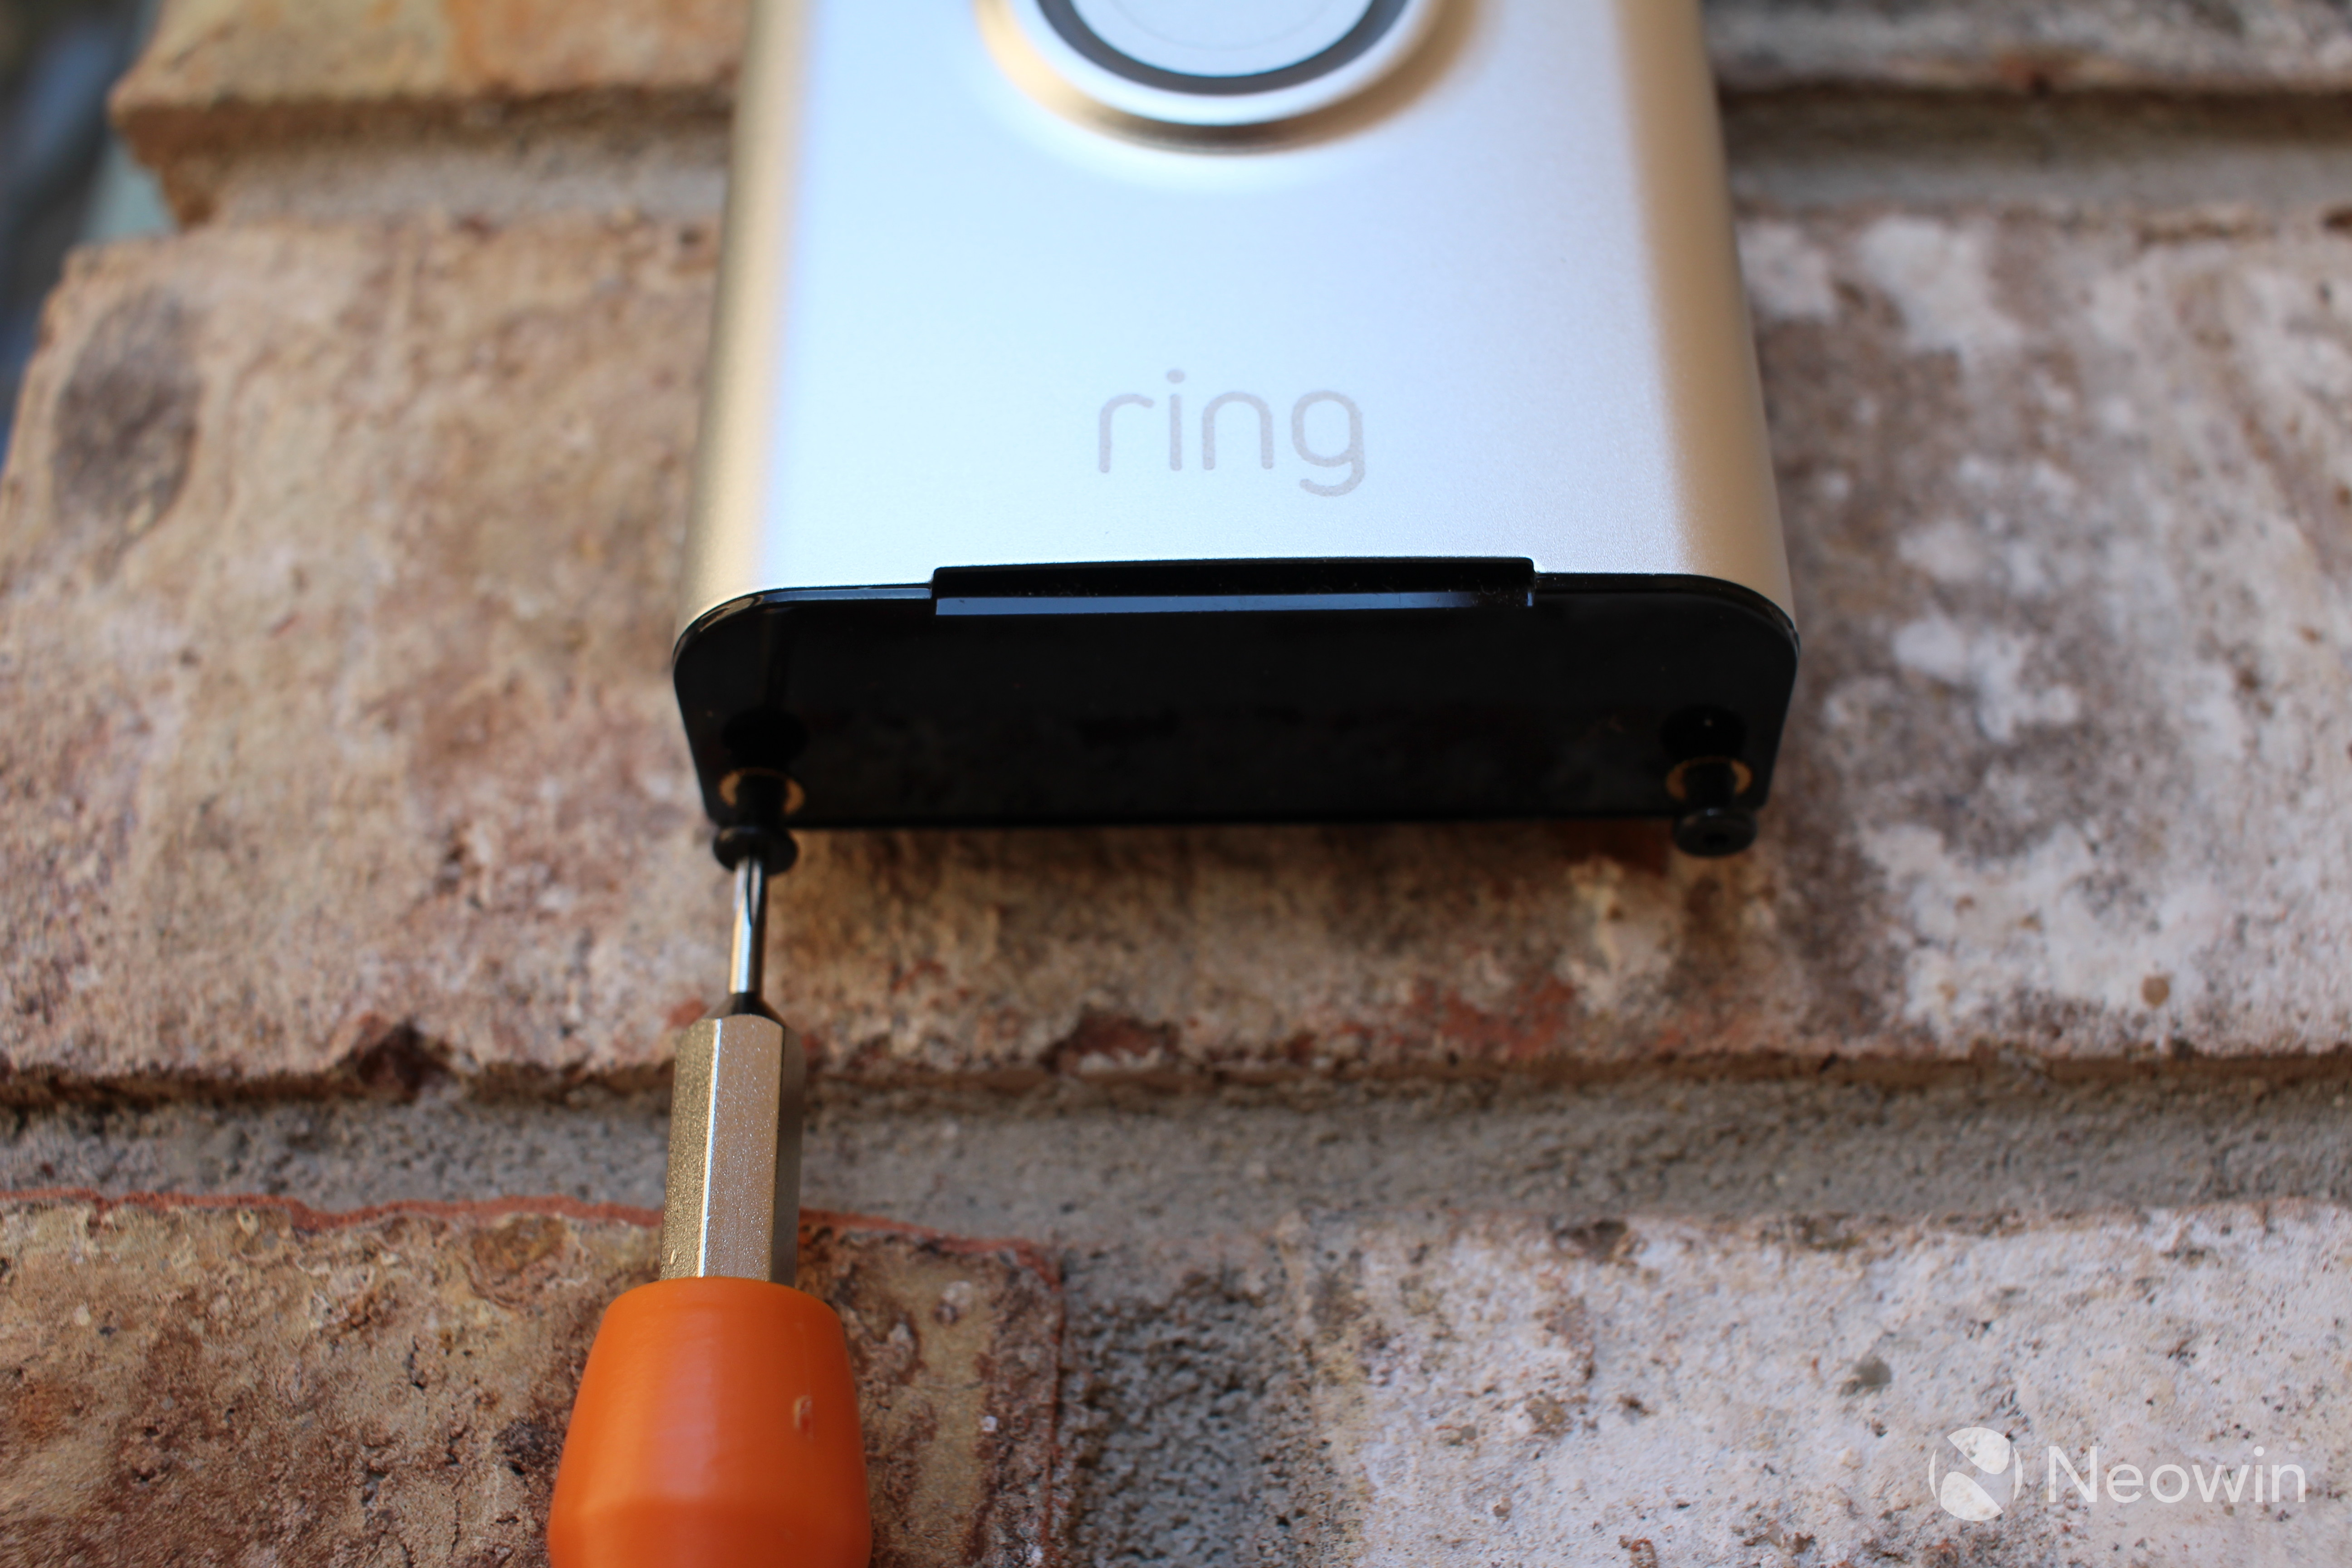 Ding Dong Deterrent My Review Of The Ring Video Doorbell Neowin Wiring In Next I Slid On Door Bell And Fastened Security Screws At Bottom Device Which Ensures Somebody Cant Just Run Up To Front